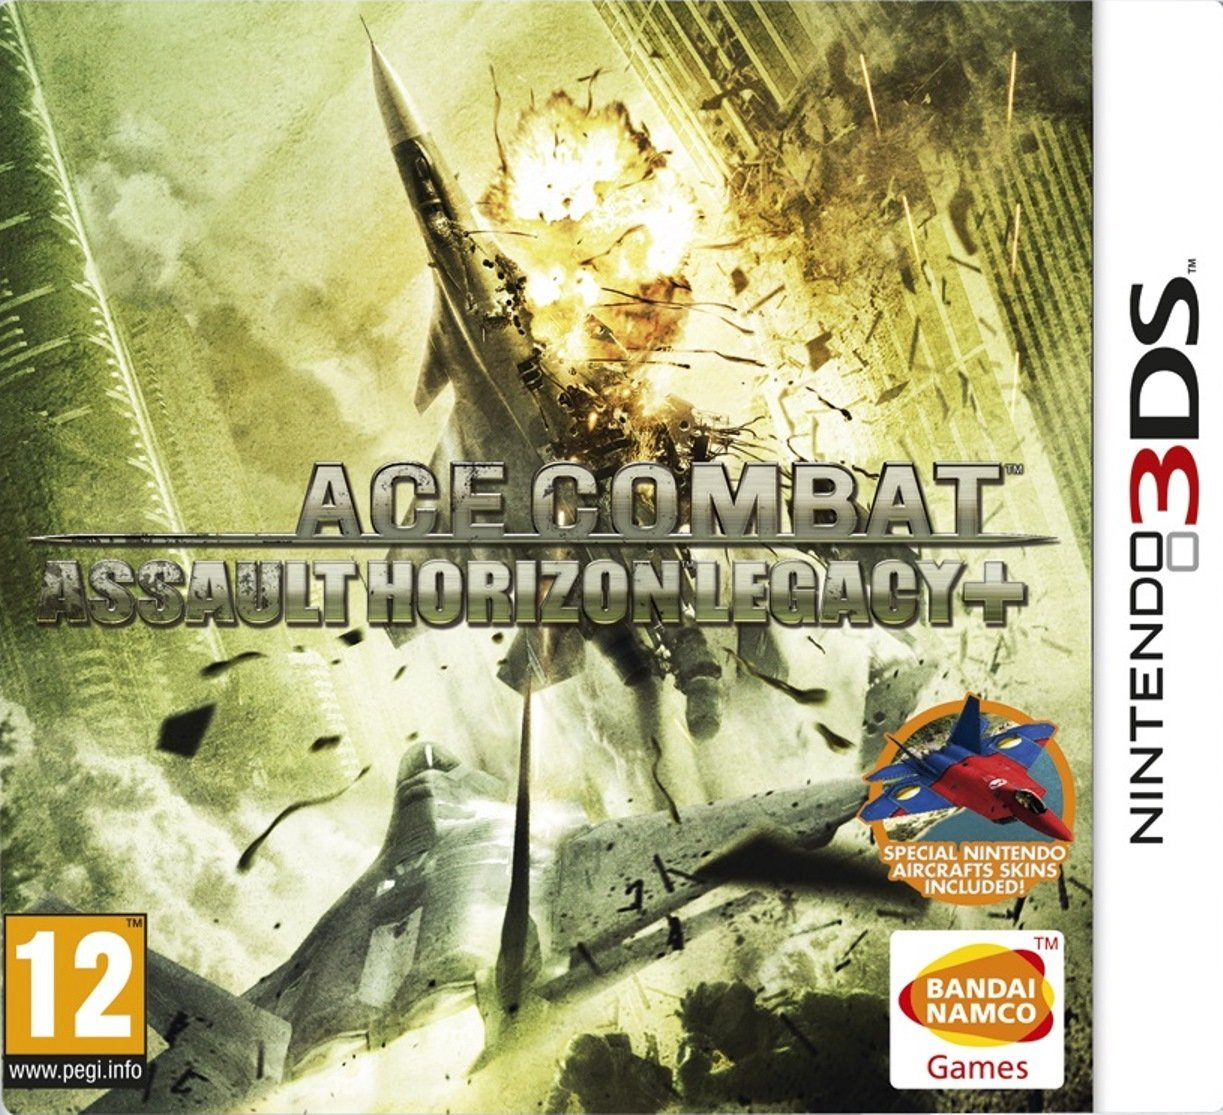 AceCombat-AssaultHorizonLegacy- New 3DS Jaquette 001